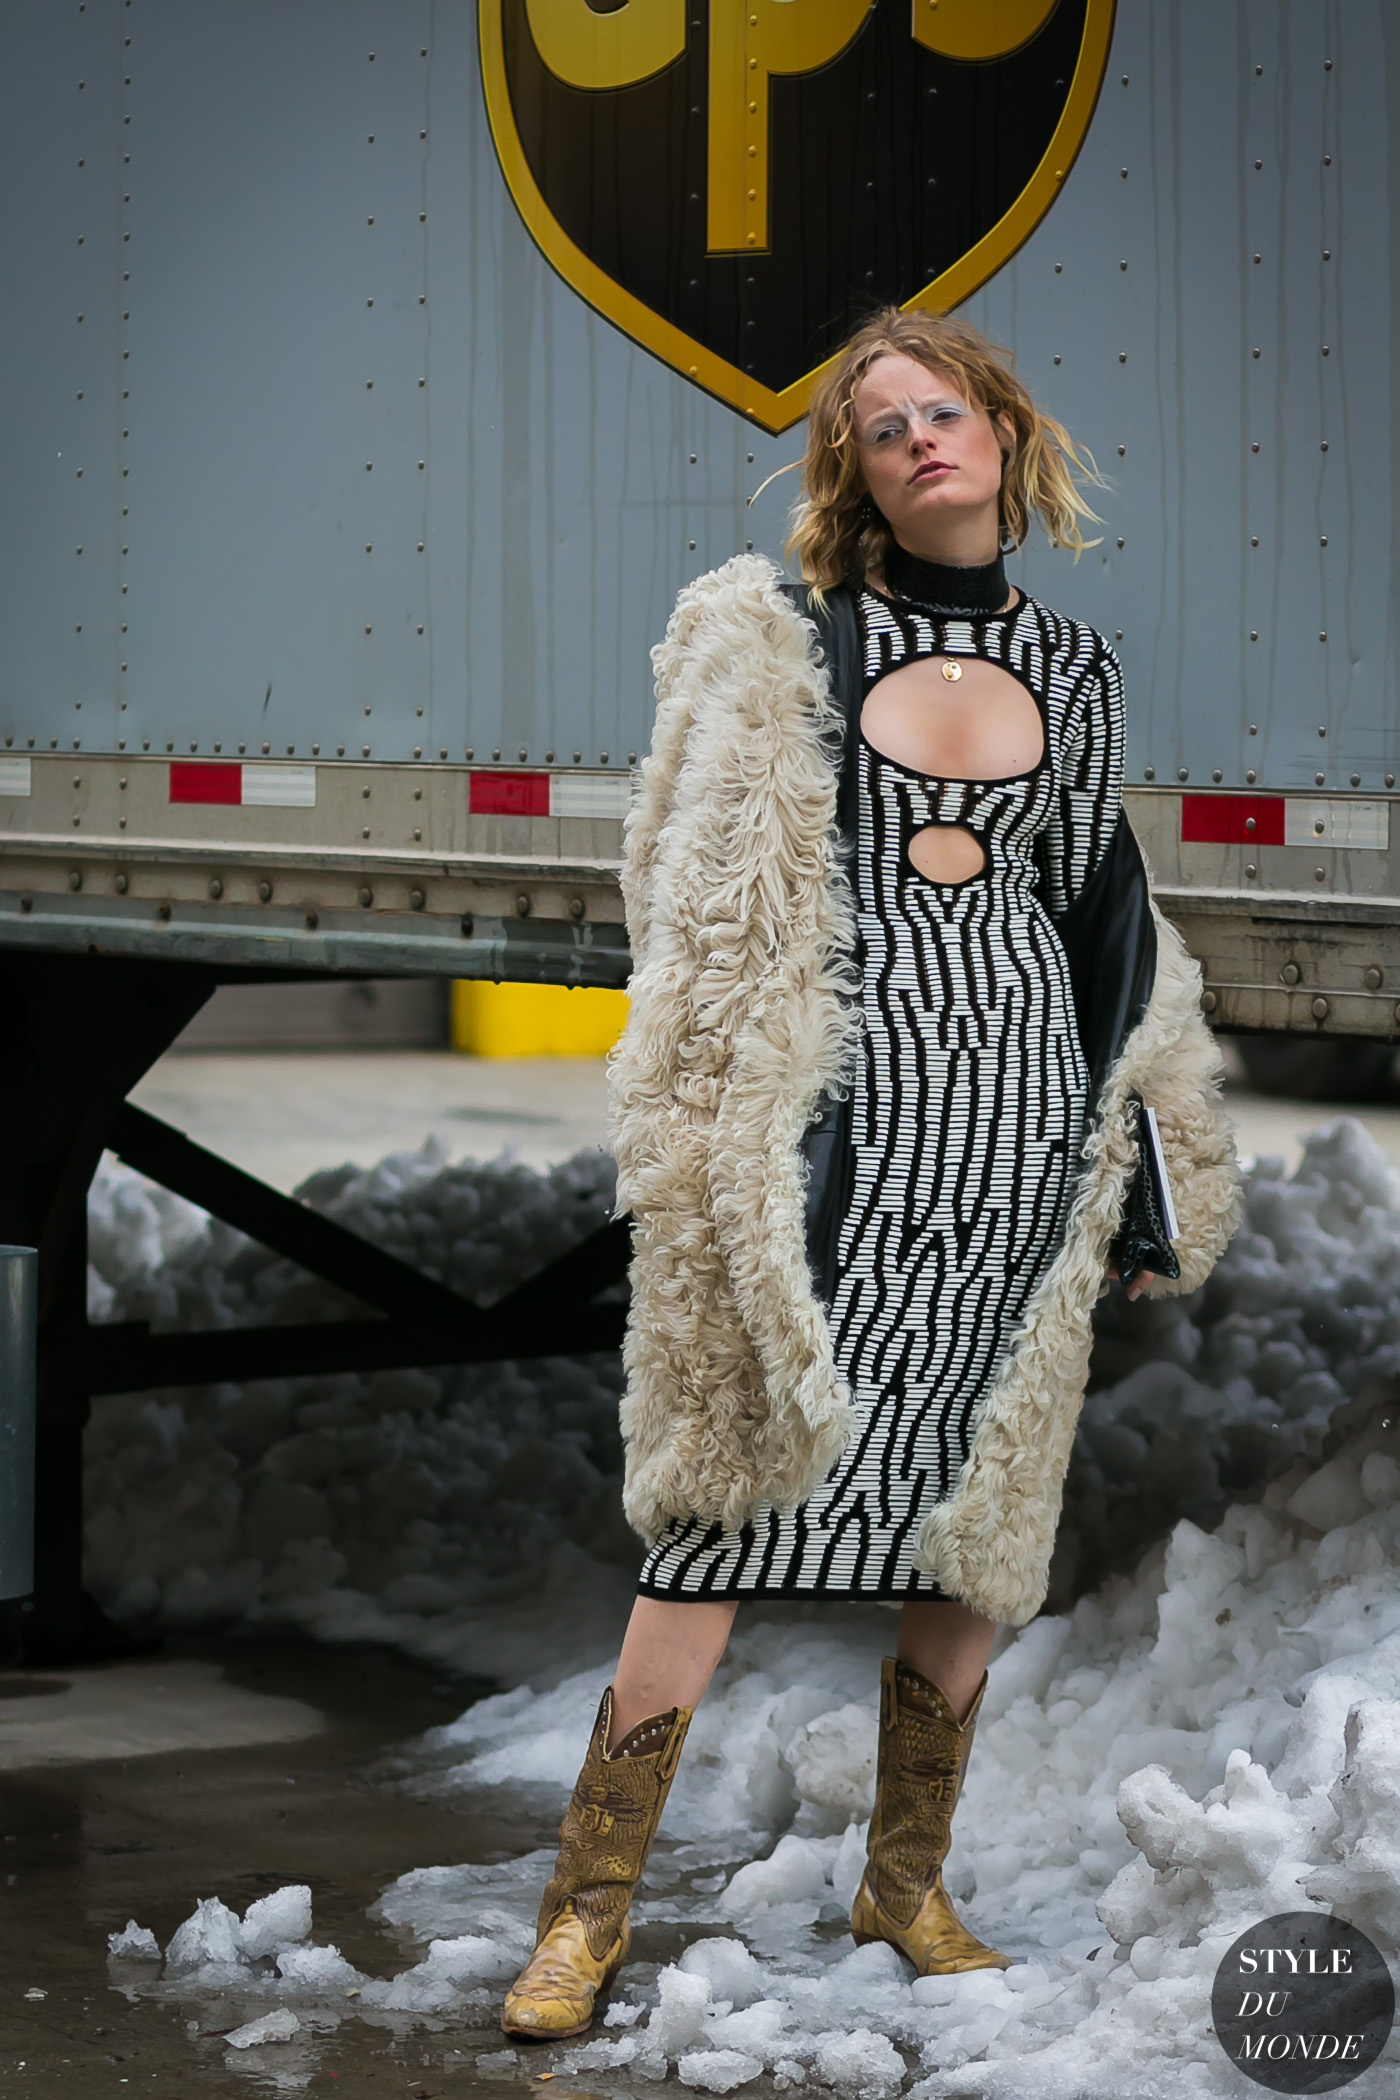 Hanne Gaby Odiele by STYLEDUMONDE Street Style Fashion Photography0E2A5804